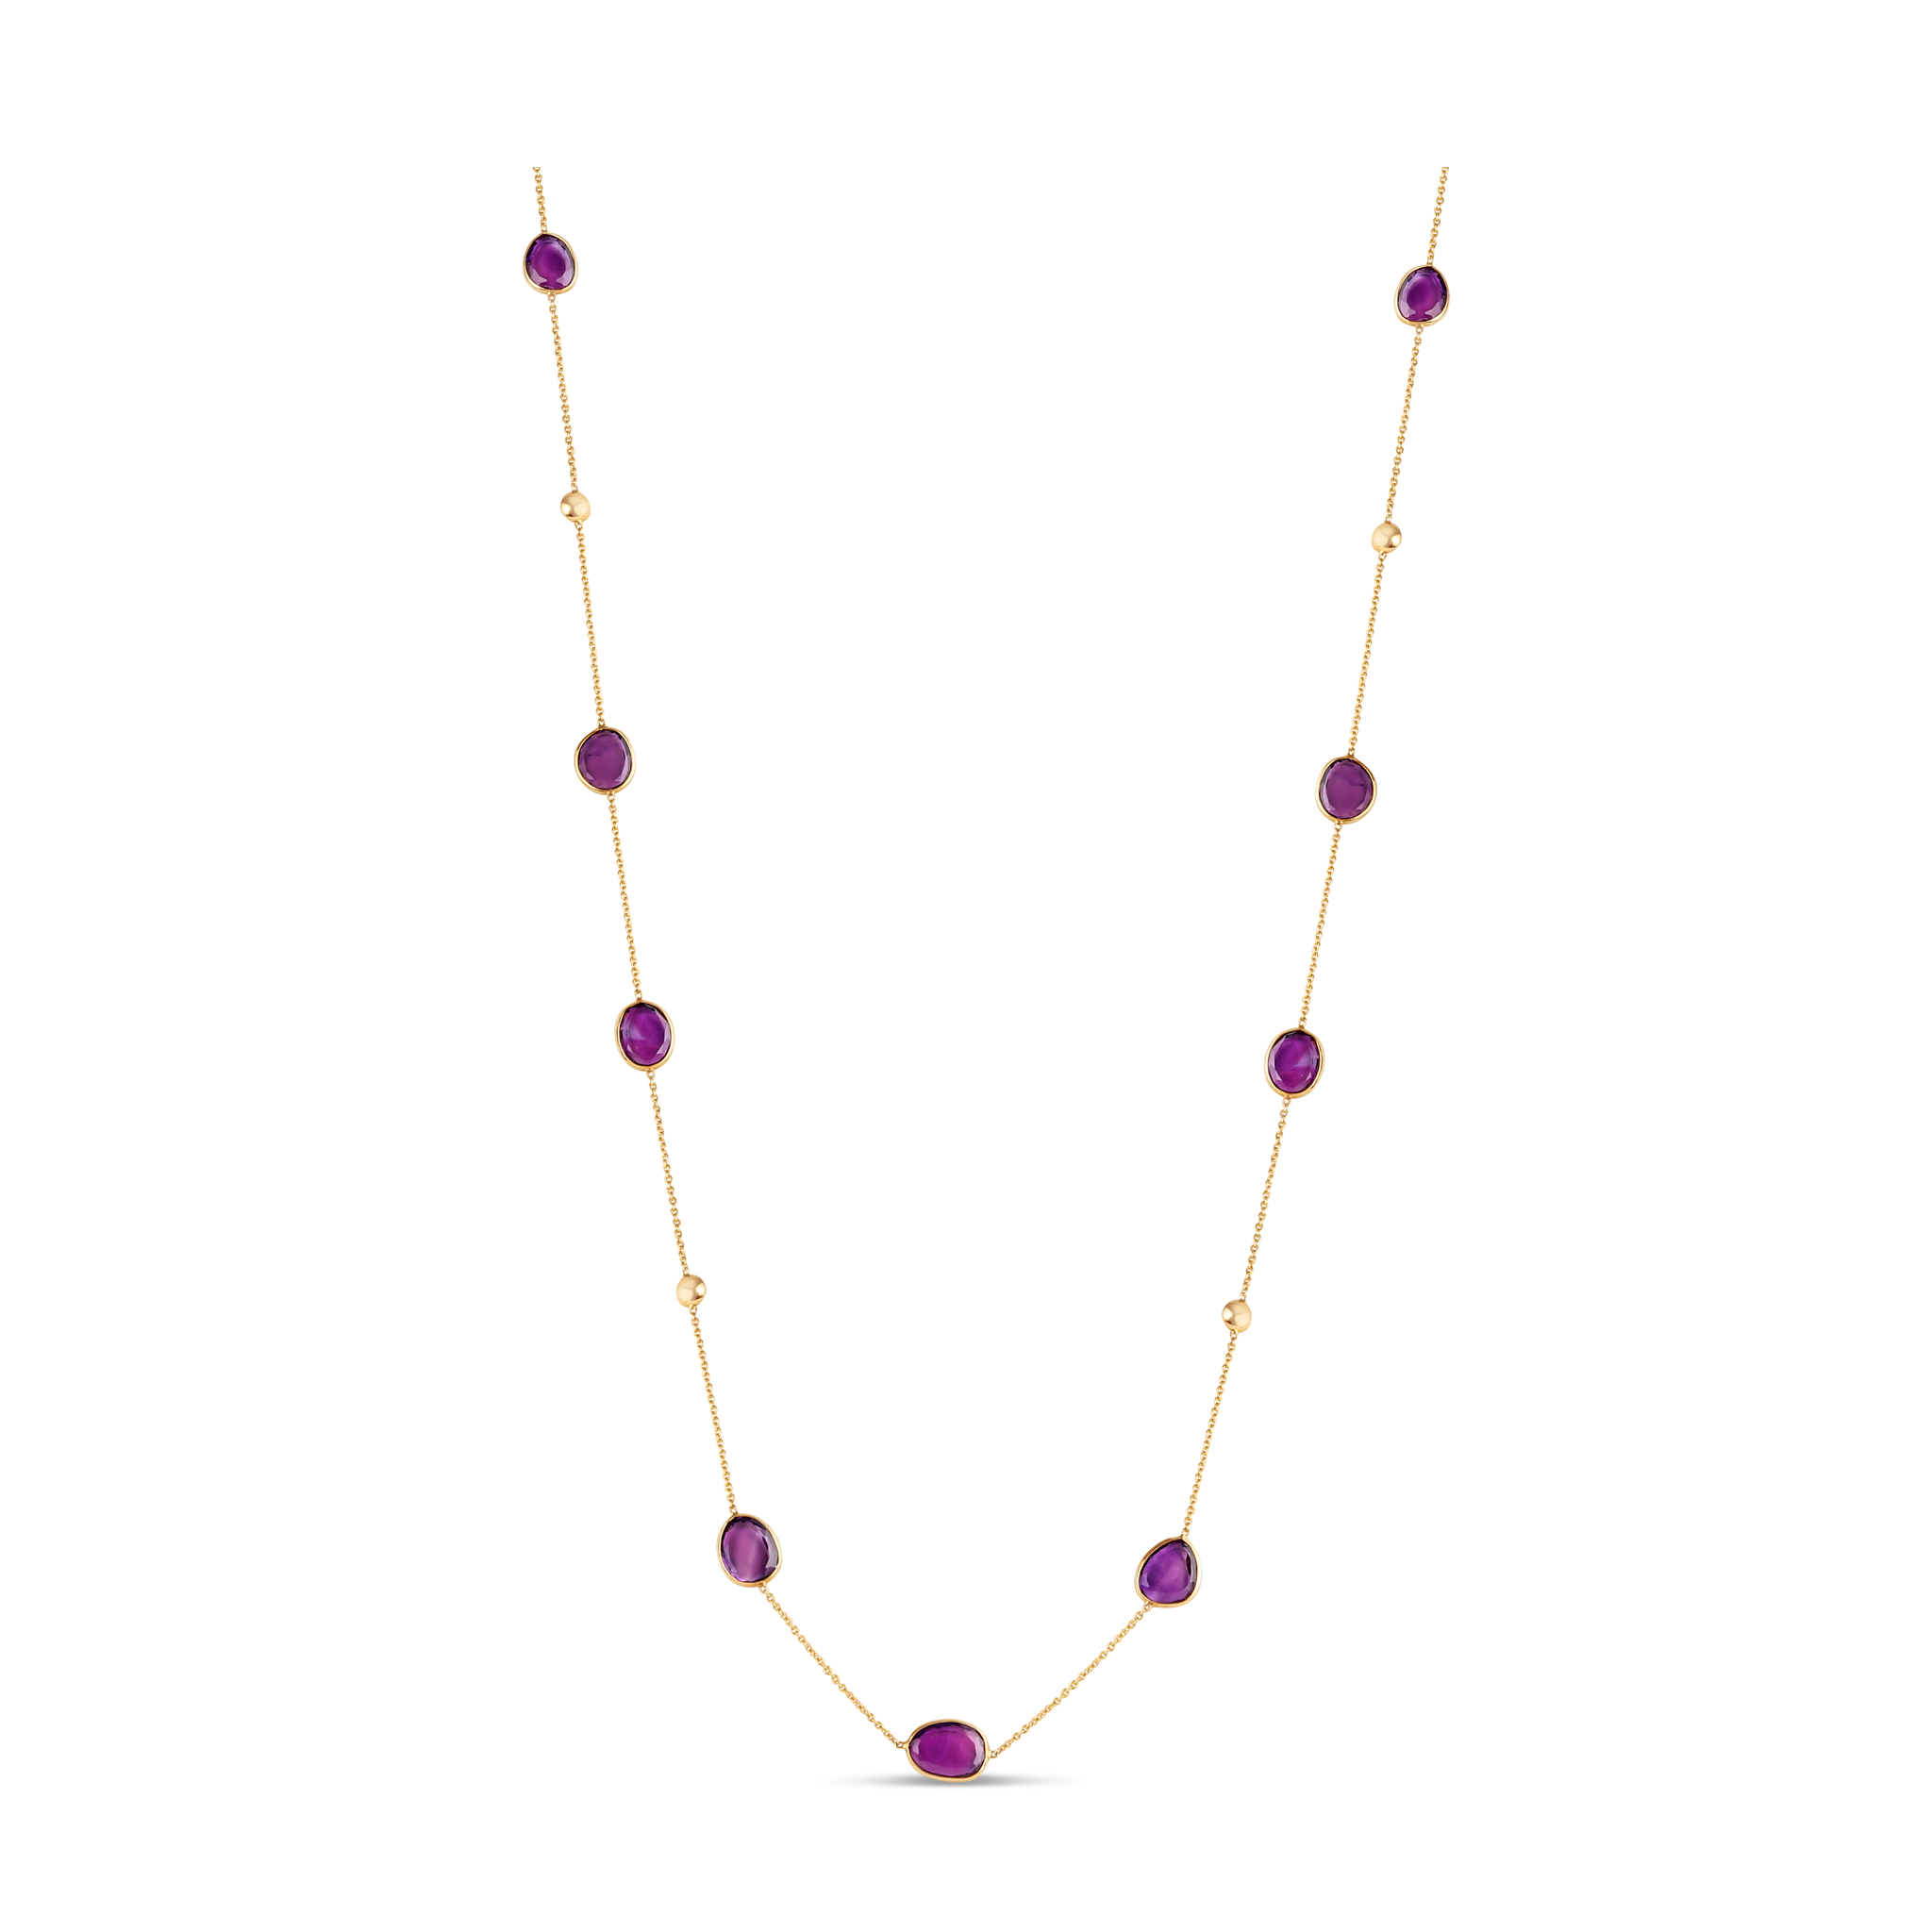 Amethyst Flat Stone Long Necklace In 18K Yellow Gold